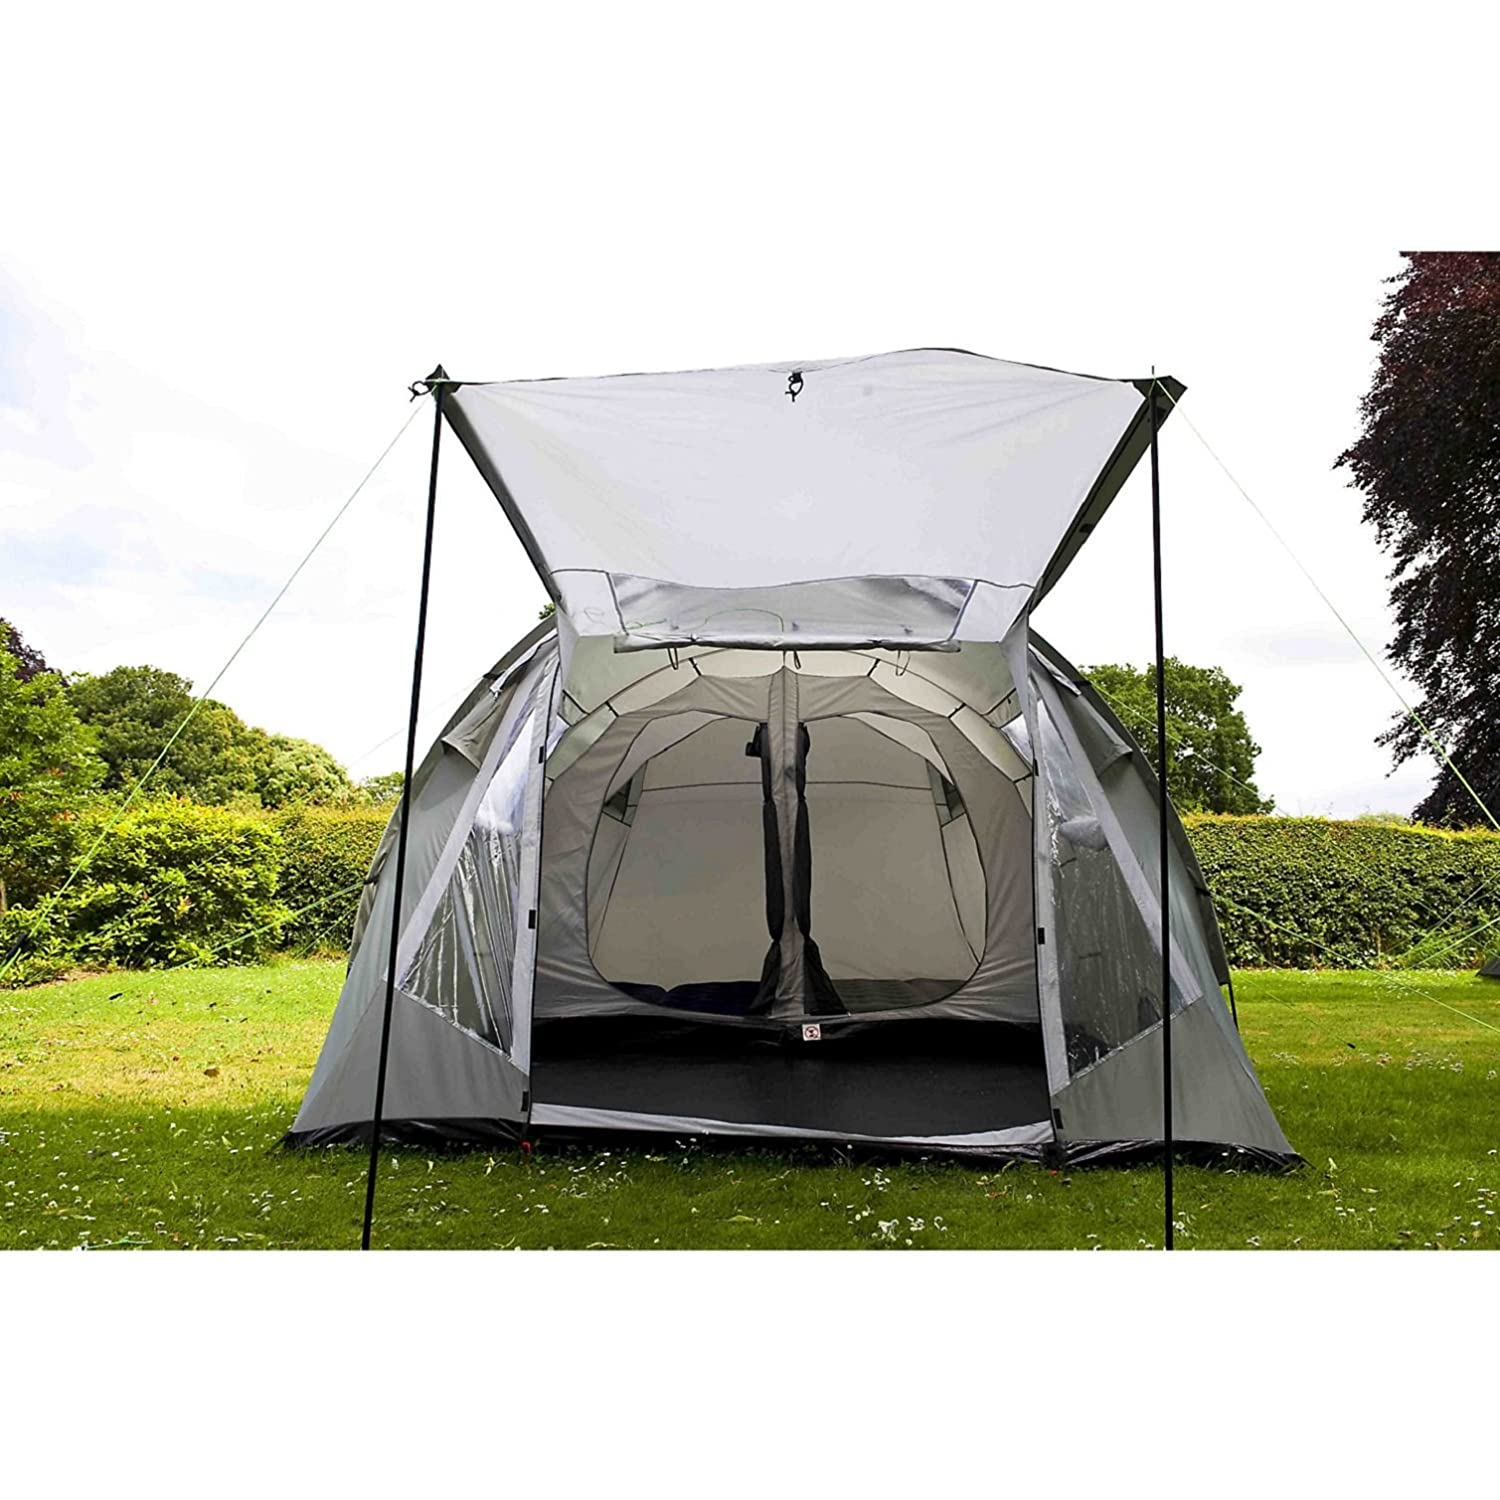 Coleman Coastline Deluxe Tent Green/Grey 4 Person Amazon.co.uk Sports u0026 Outdoors  sc 1 st  Amazon UK & Coleman Coastline Deluxe Tent Green/Grey 4 Person: Amazon.co.uk ...